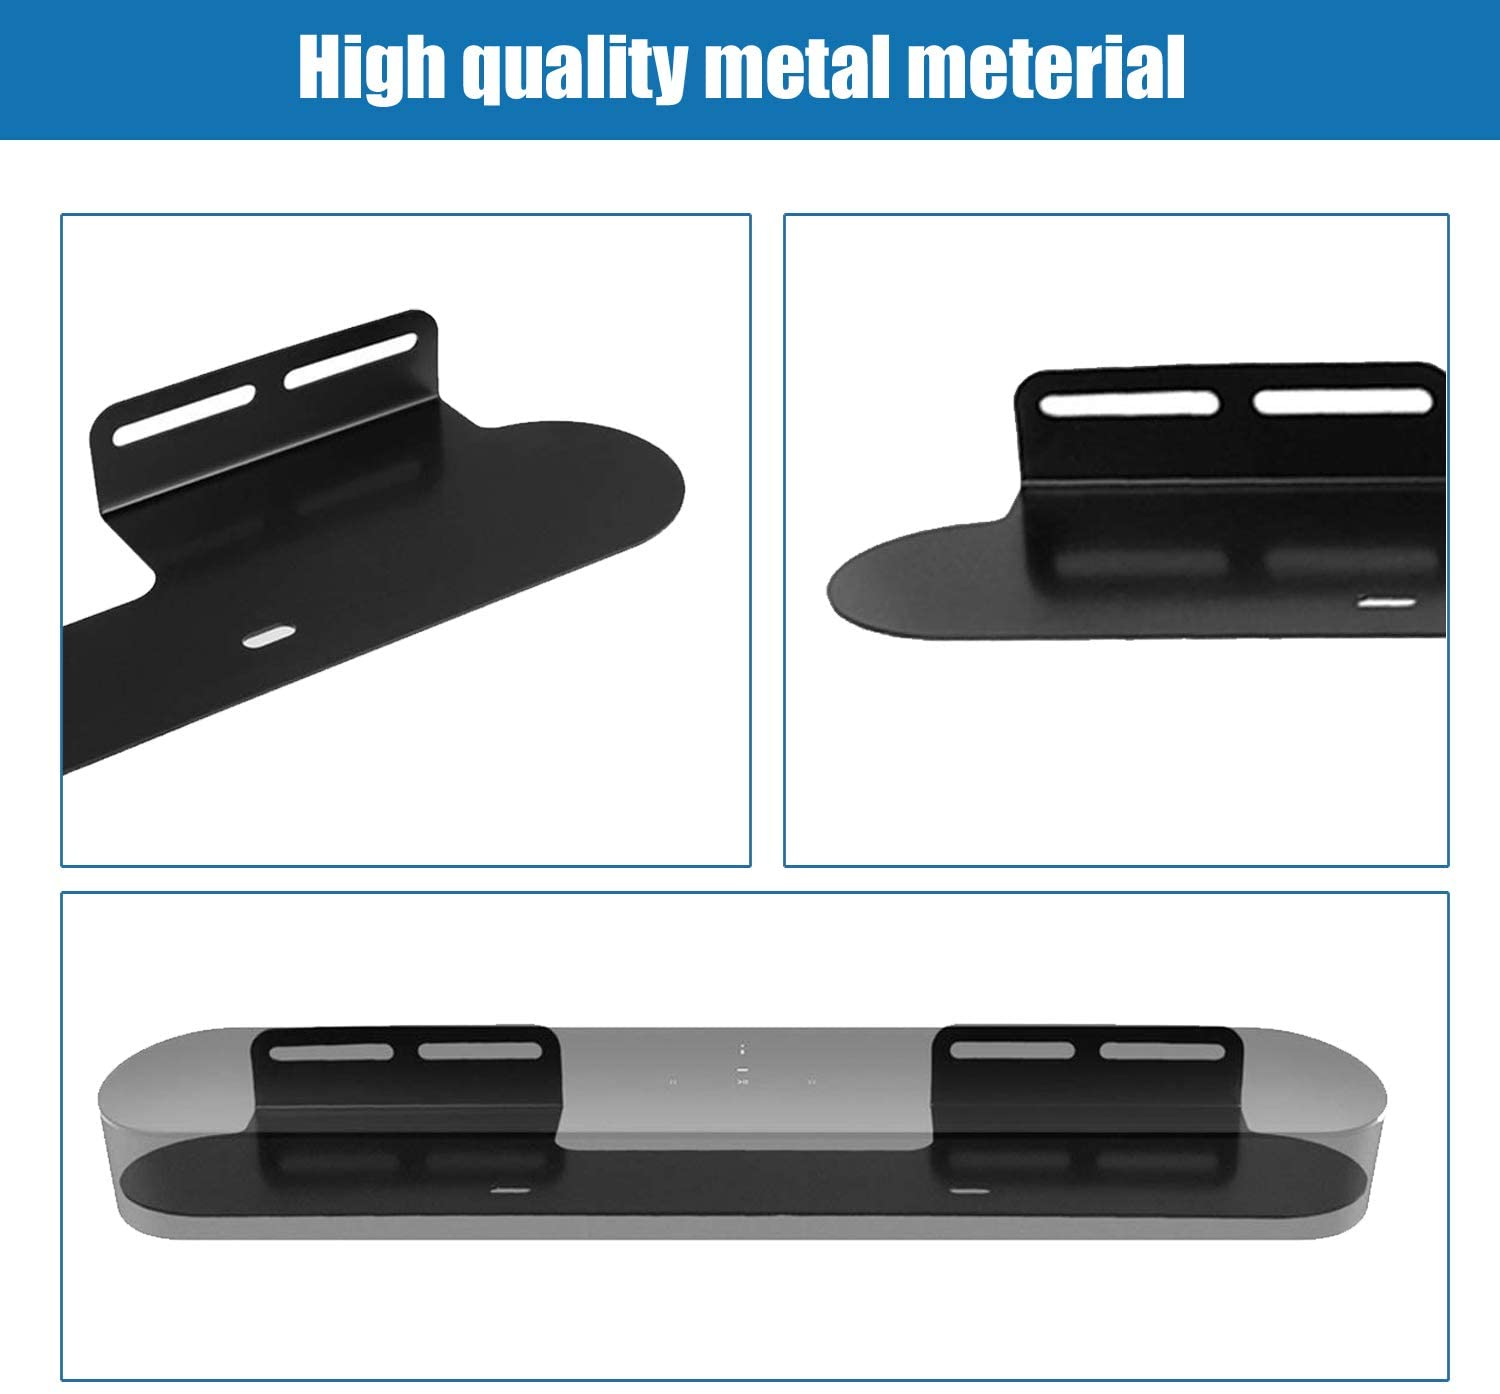 Wall Mount for Sonos Beam Soundbar Sturdy Metal Mounting Bracket Compatible with Sonos Beam Sound Bar TV Wall Mounts White